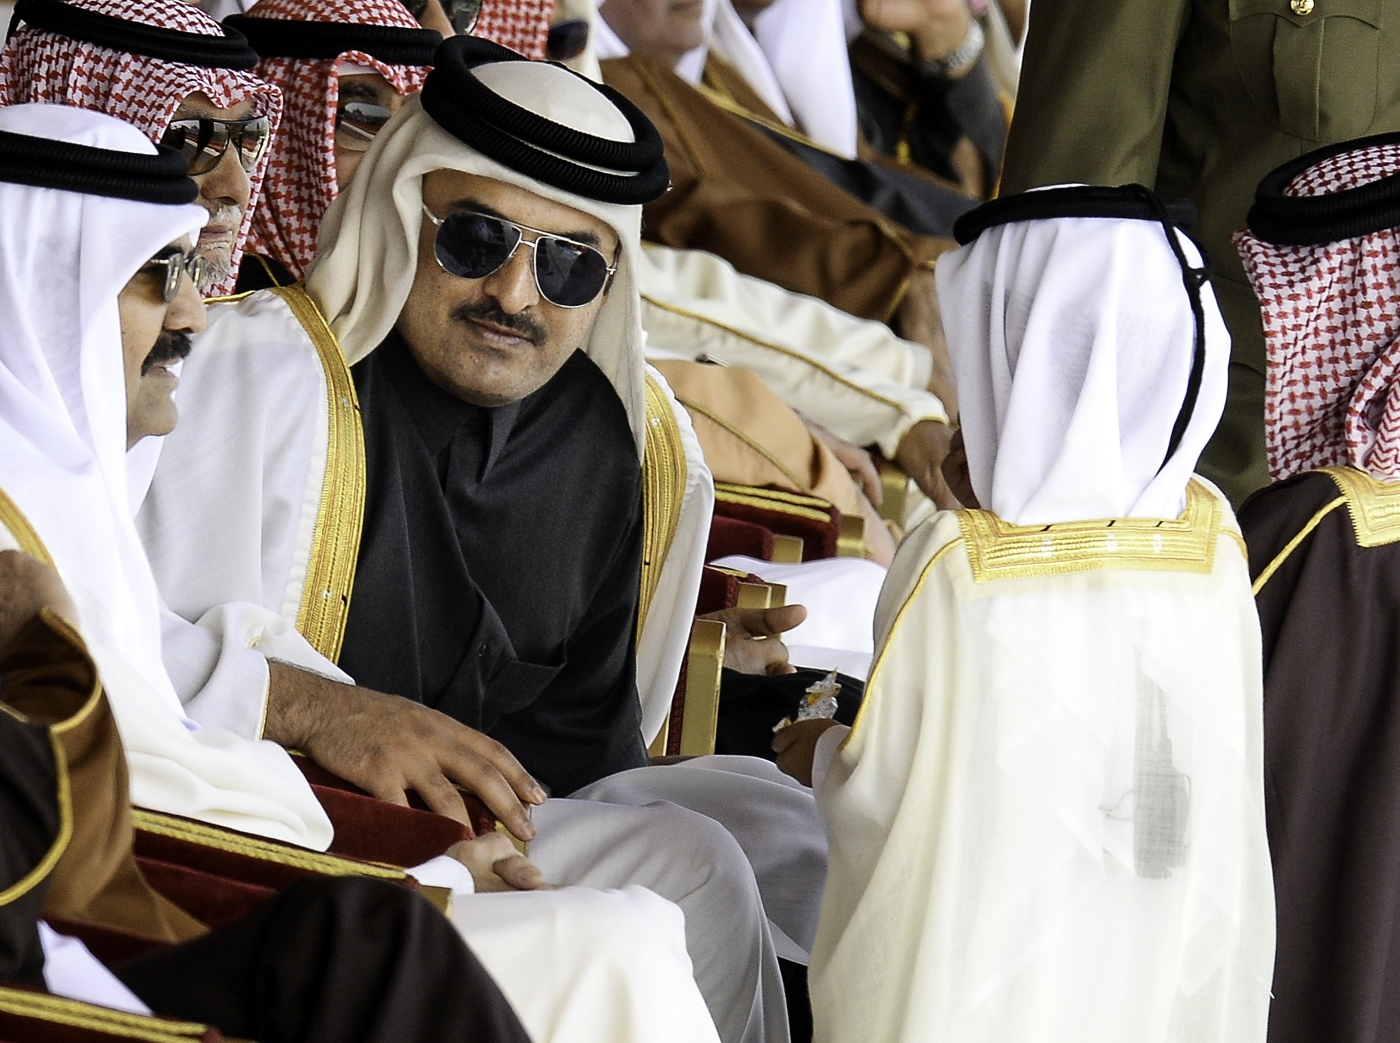 Qatari Royals, Banks Allegedly Actors In Terrorism Financing Conspiracy